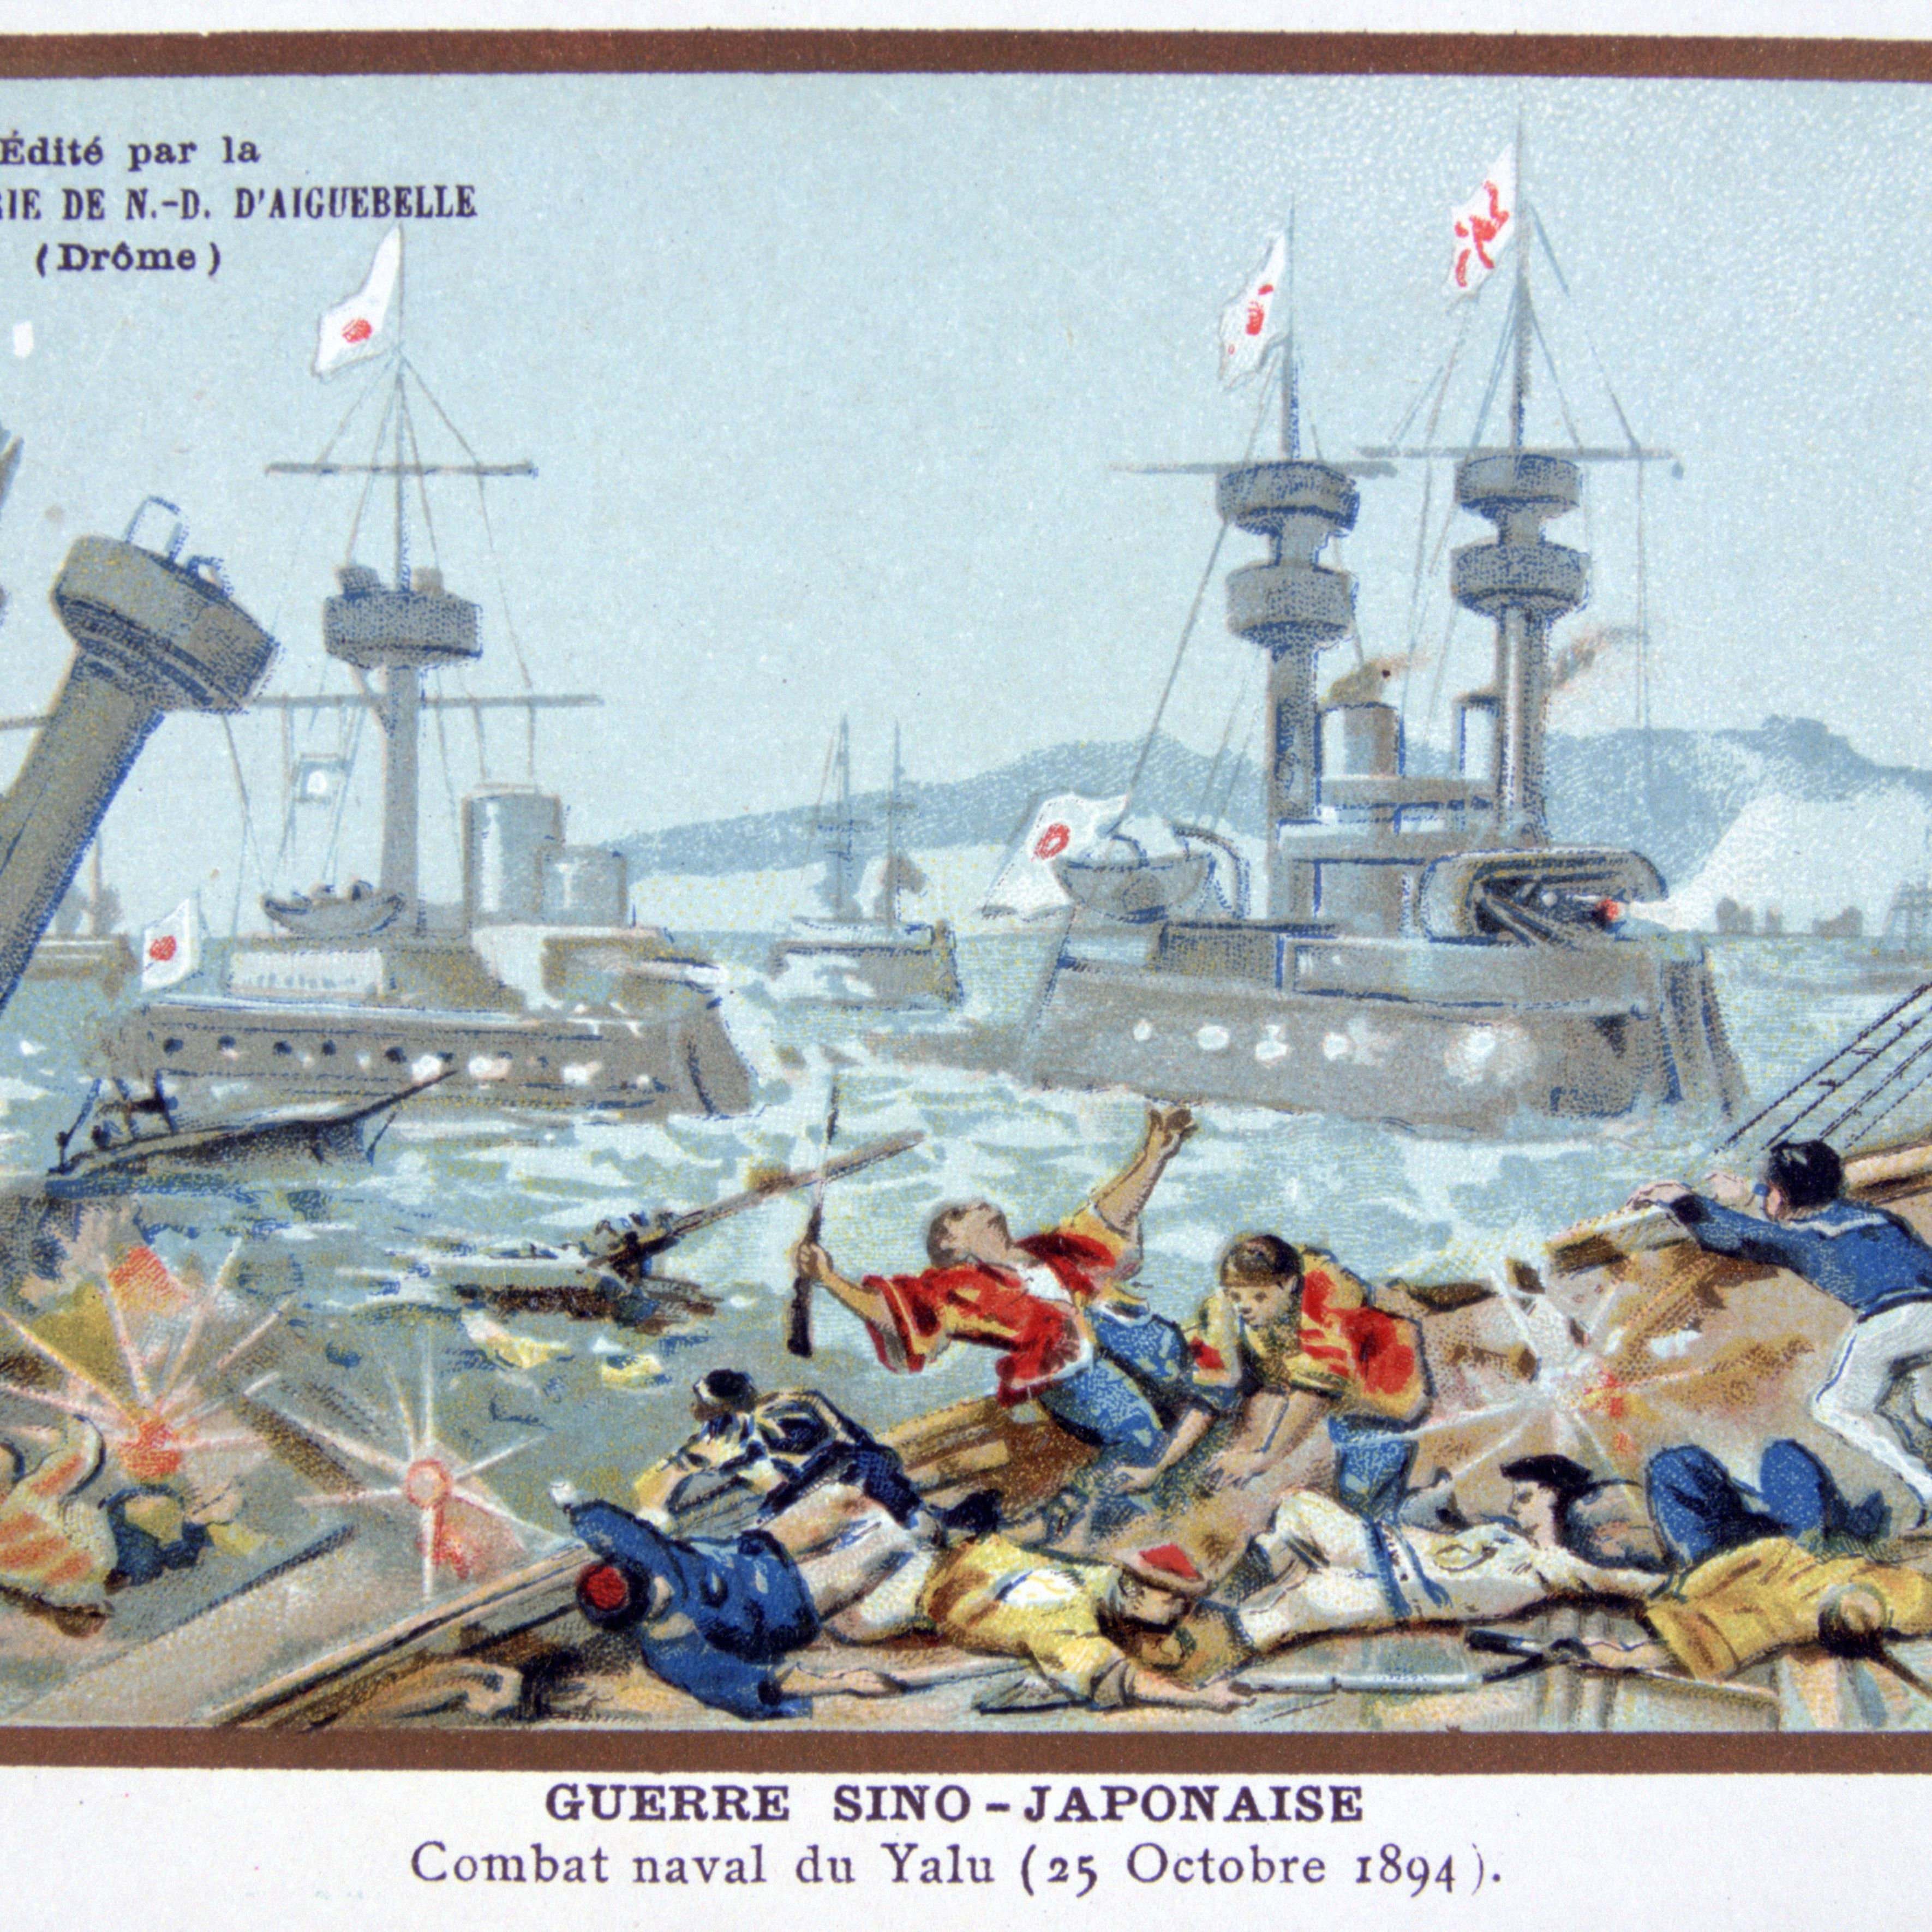 The First Sino-Japanese War of 1894 to 1895